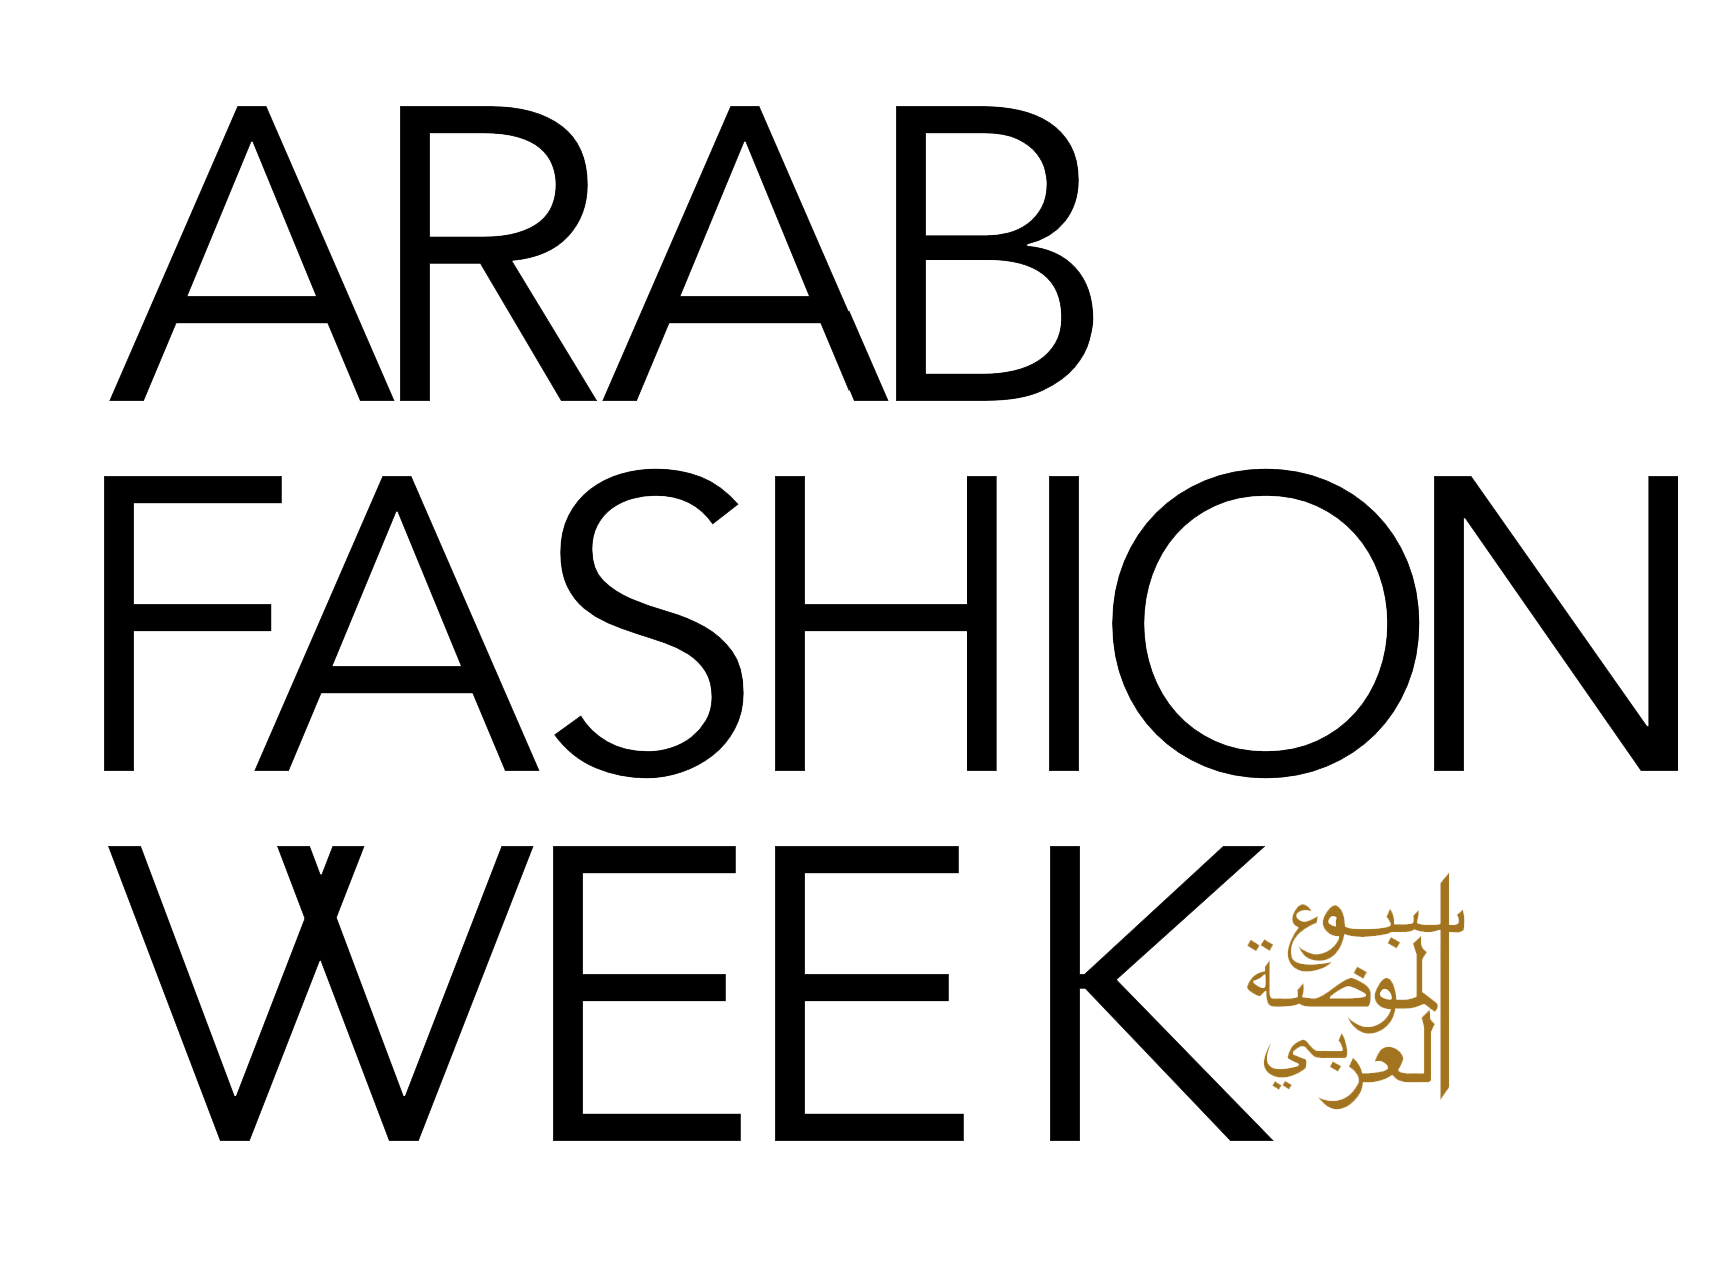 ARAB-FASHION-WEEK-NEW-LOGO-.png